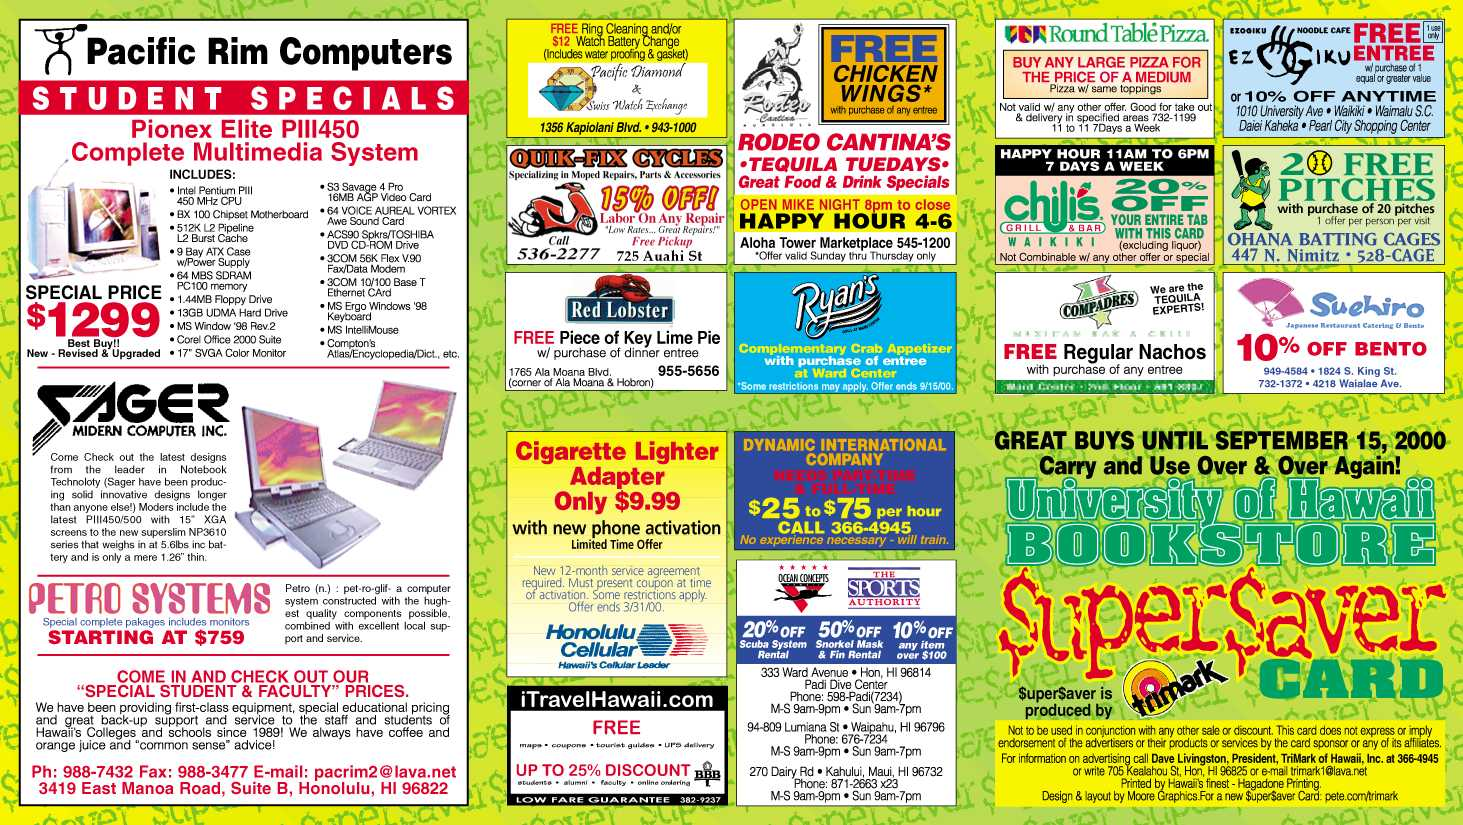 Fall 1999 SuperSaver Card, page 1 (277K)